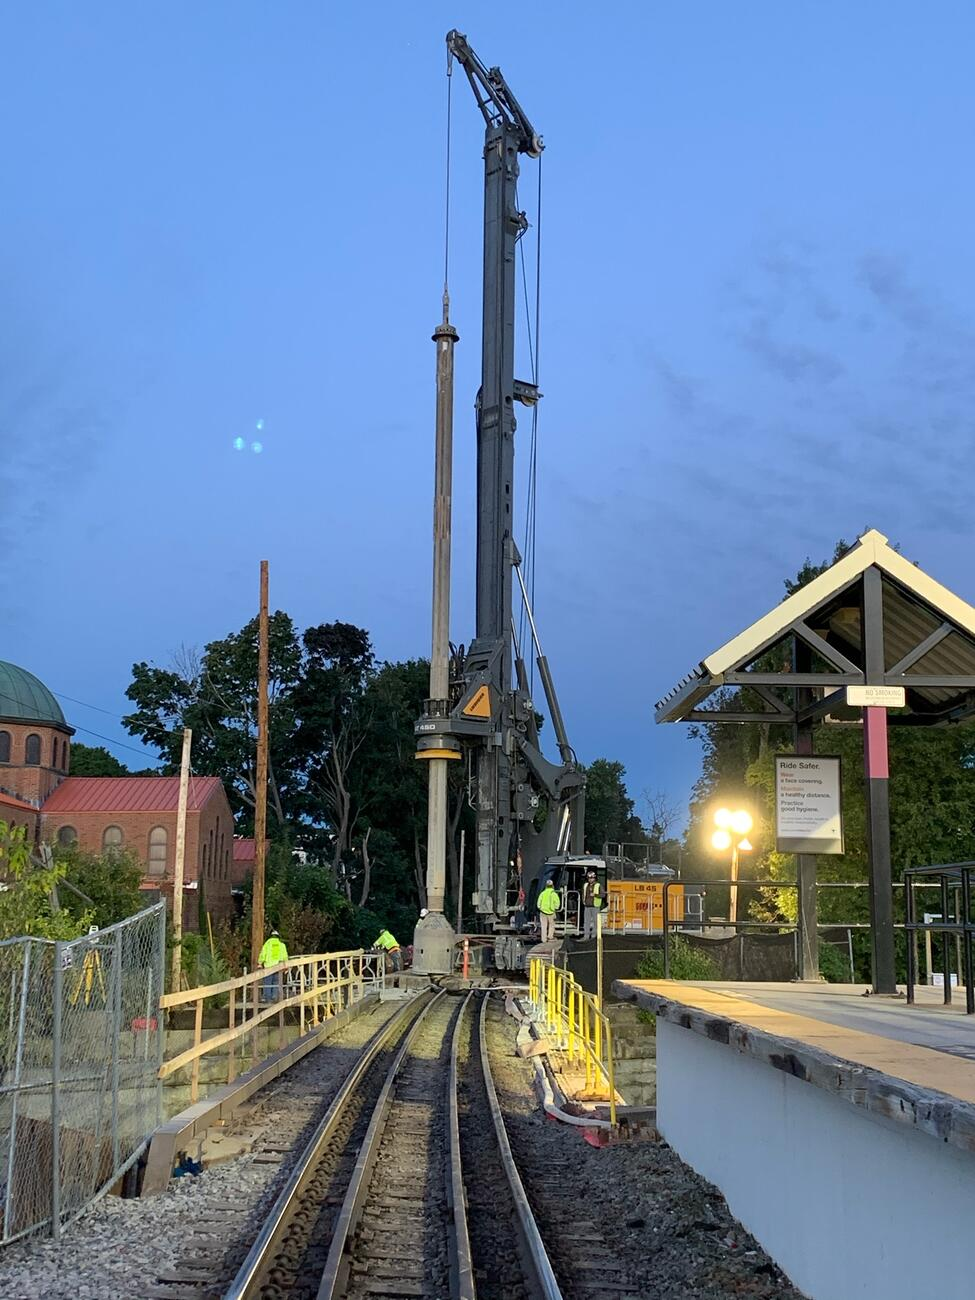 Image of the Robert Street platform at dusk. Drilled shaft prep work towers over residential buildings in the distance.